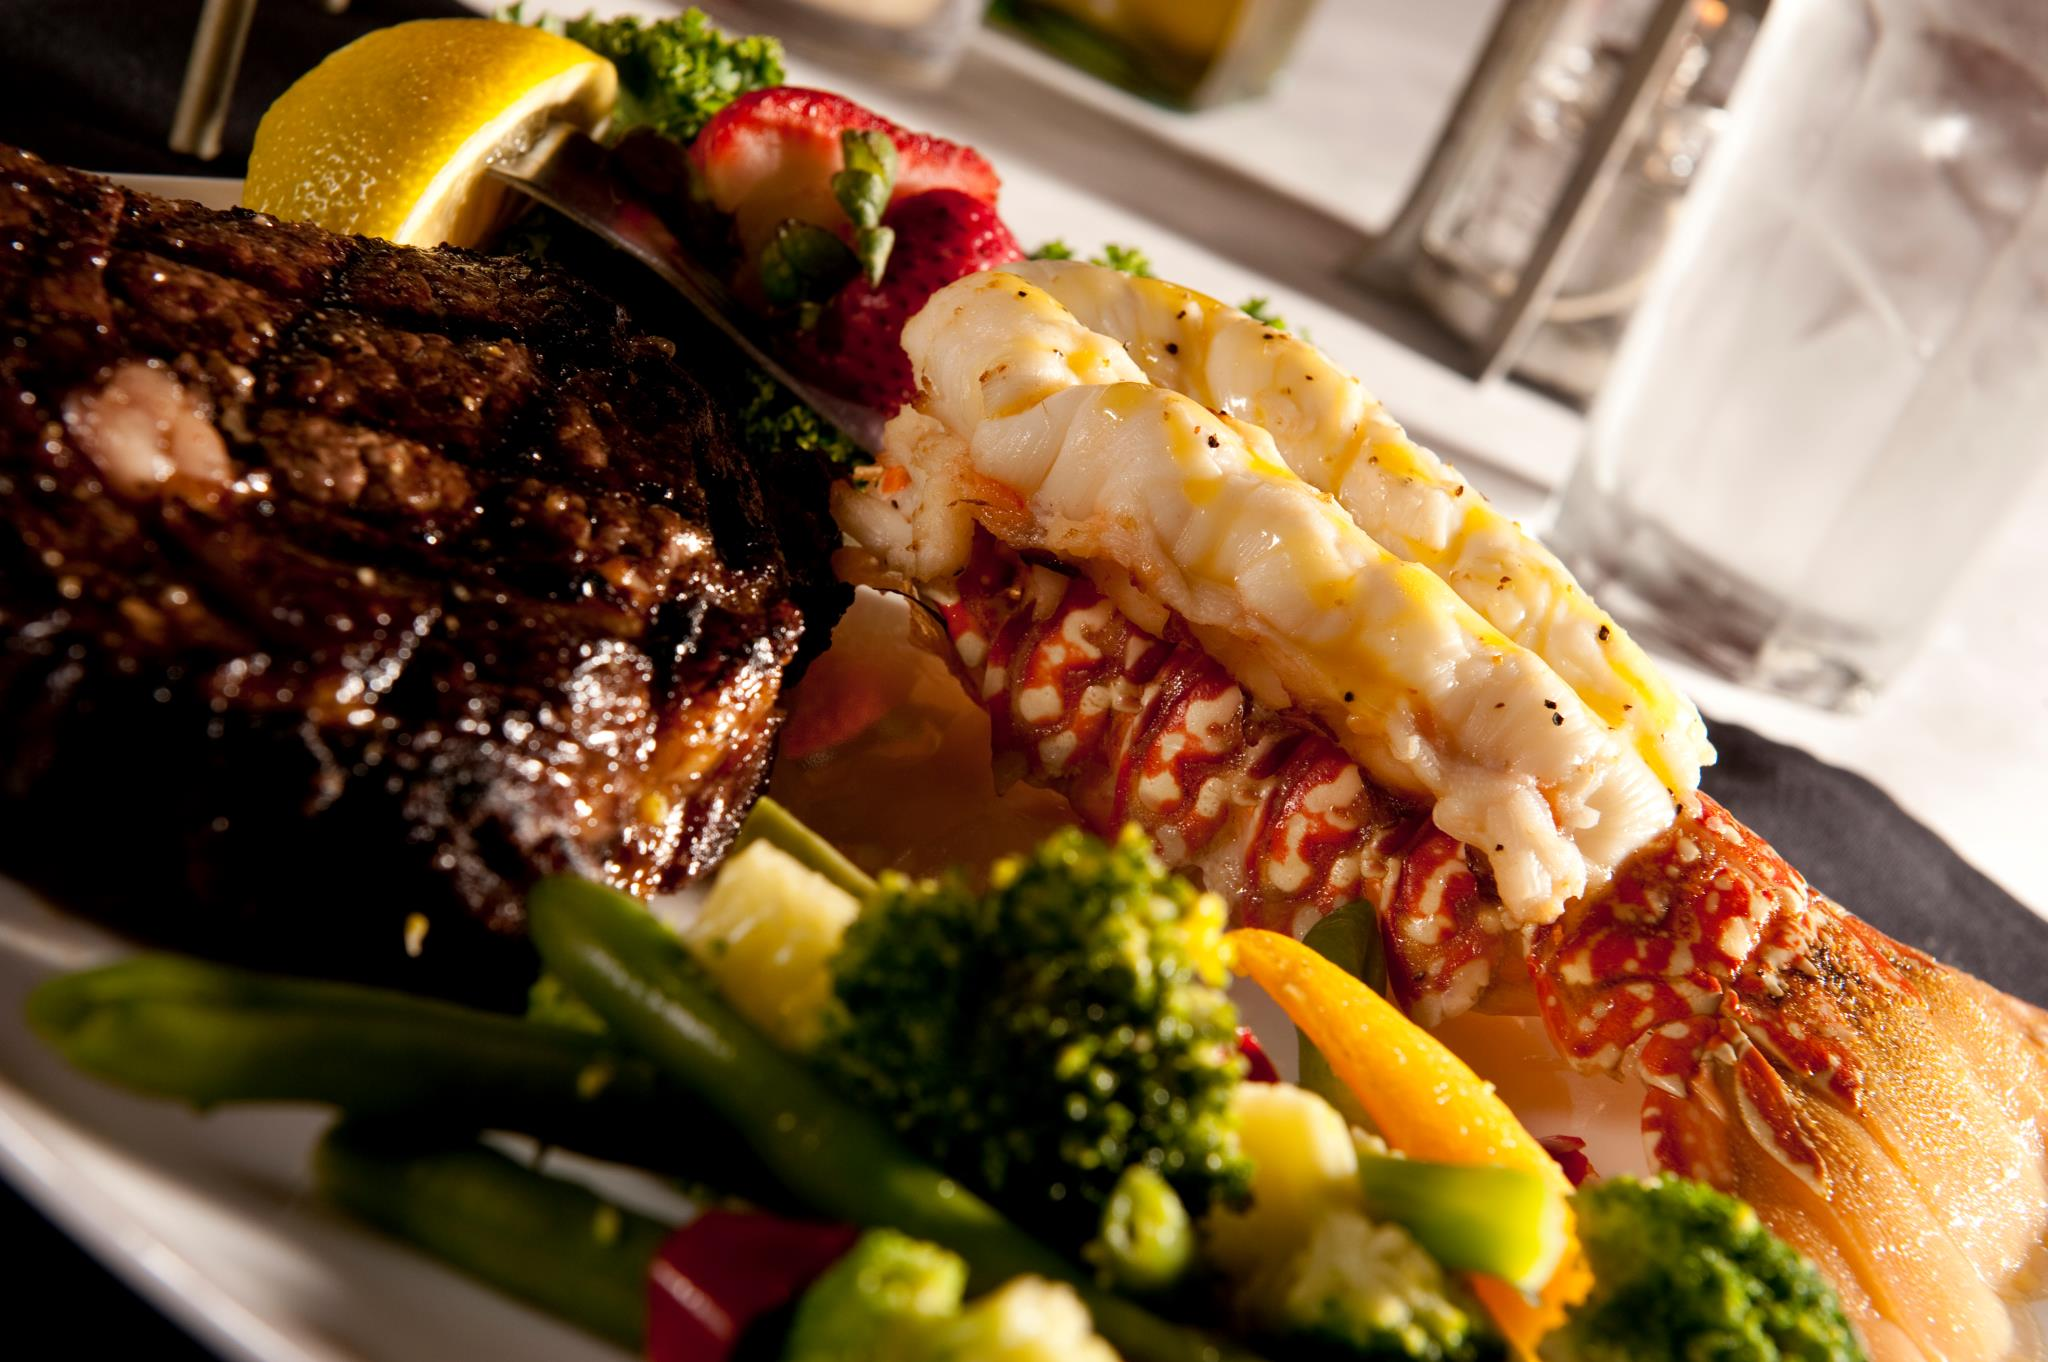 Trolley Bar Steaks and Seafood Fort Wayne Surf and Turf meal